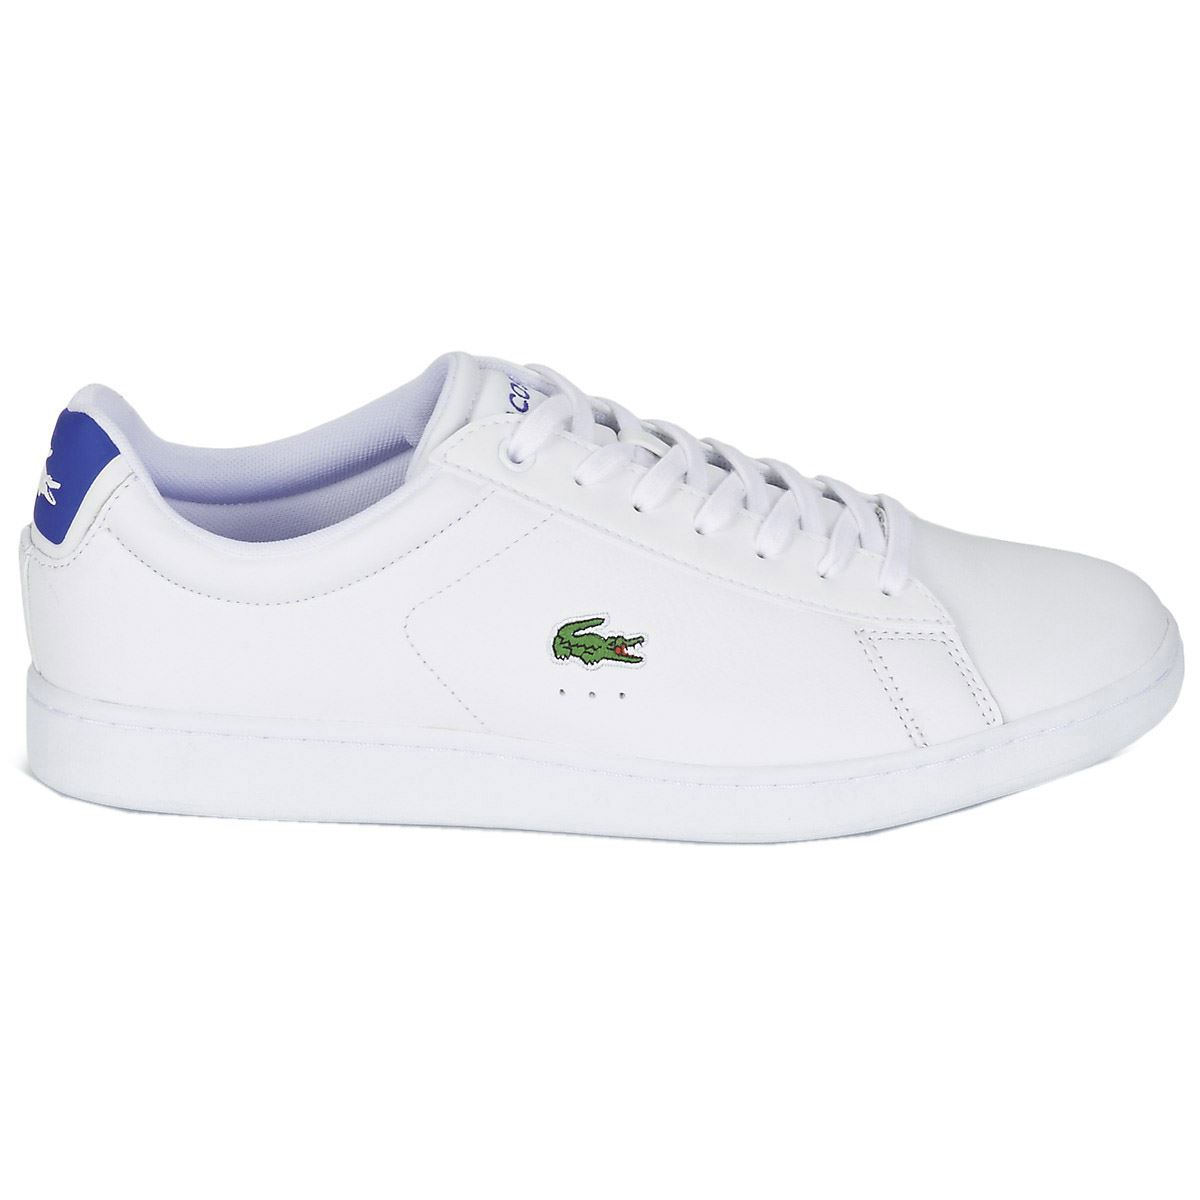 Image is loading Lacoste-Carnaby-EVO-S216-2-SPM-White-Blue-